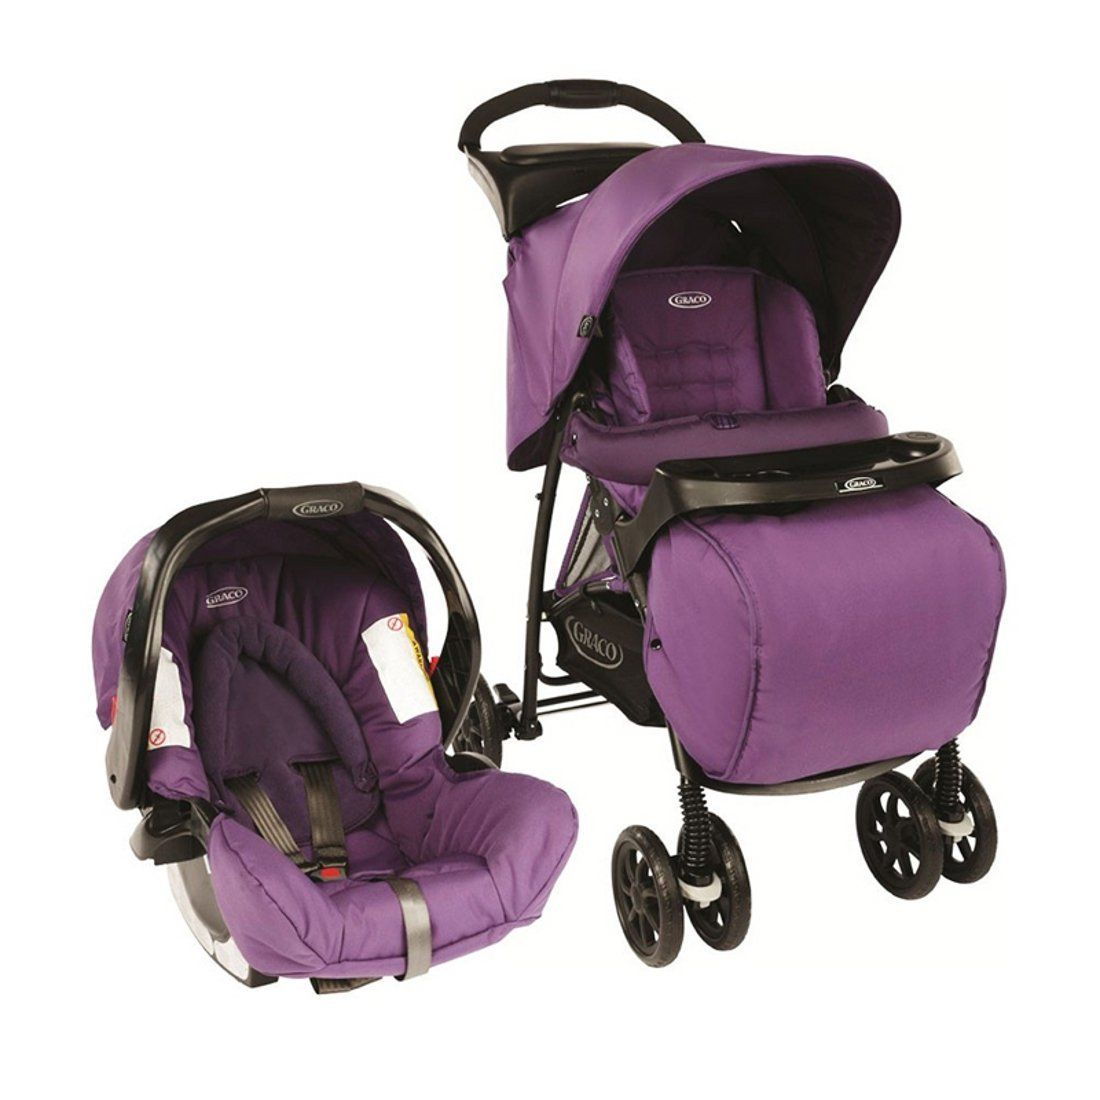 Medium Of Graco Travel System